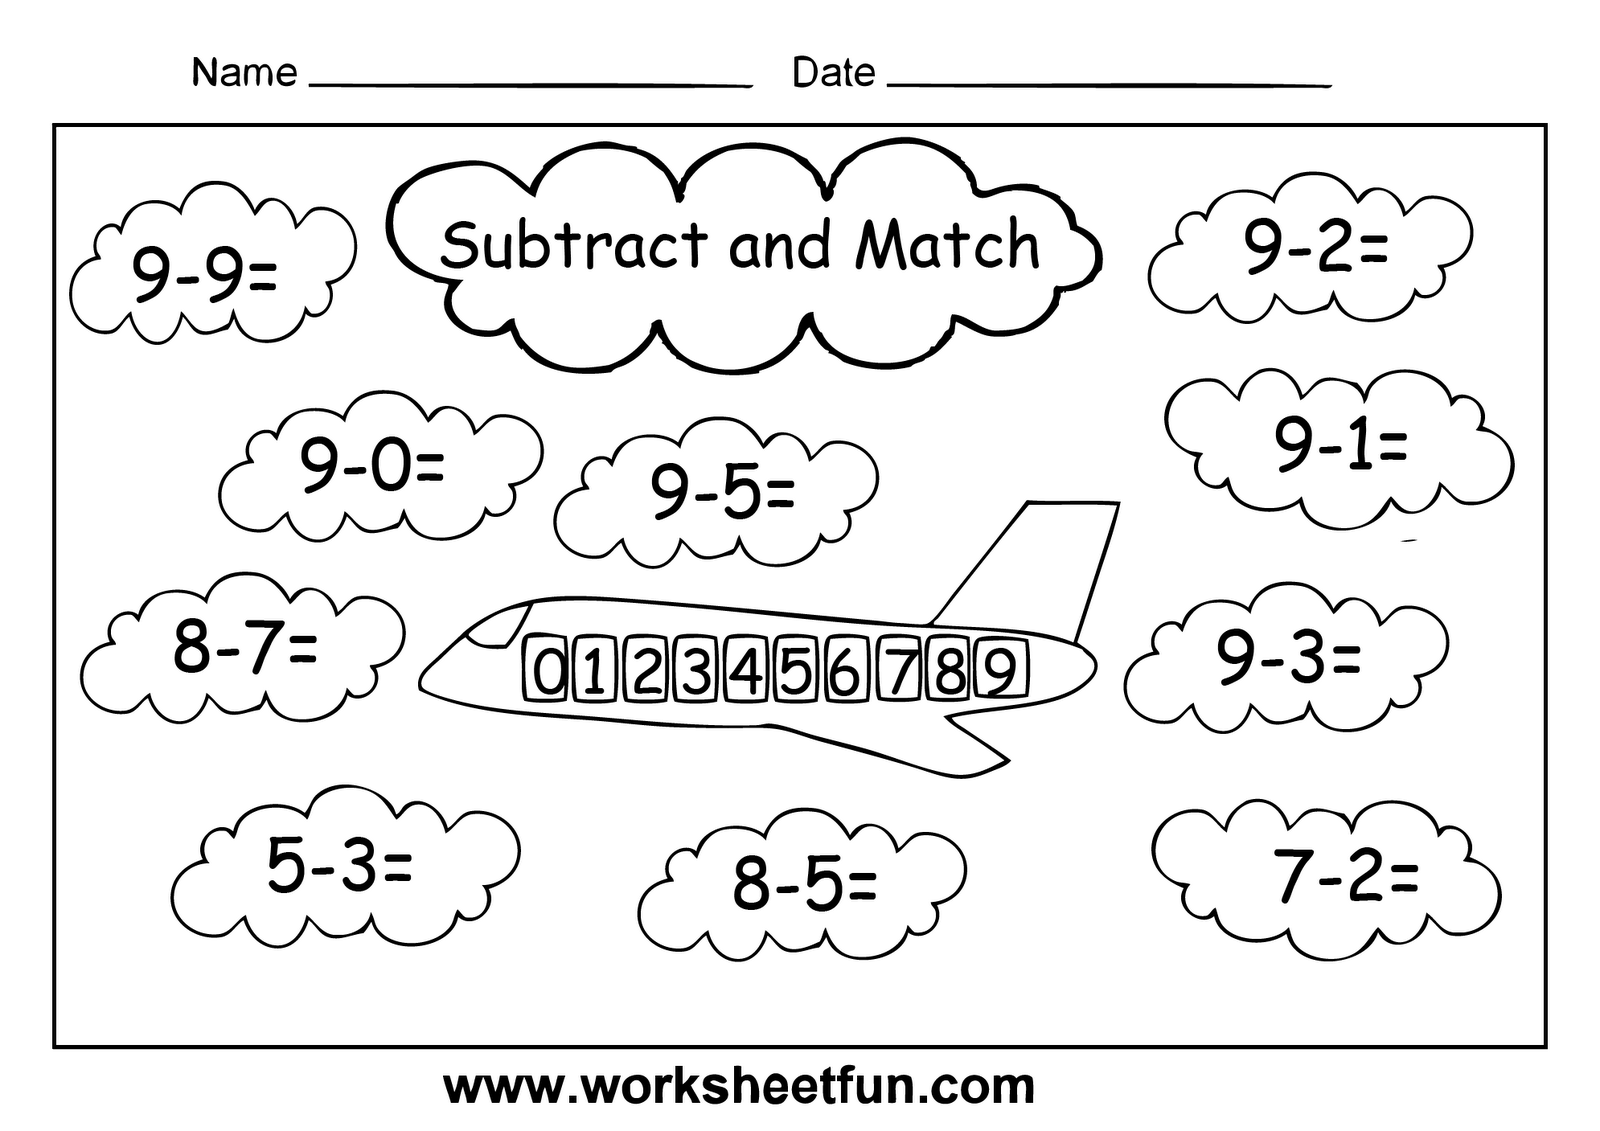 Worksheet Printable Subtraction Worksheets For First Grade printable subtraction worksheets for first grade scalien 1000 images about twins on pinterest easter worksheets